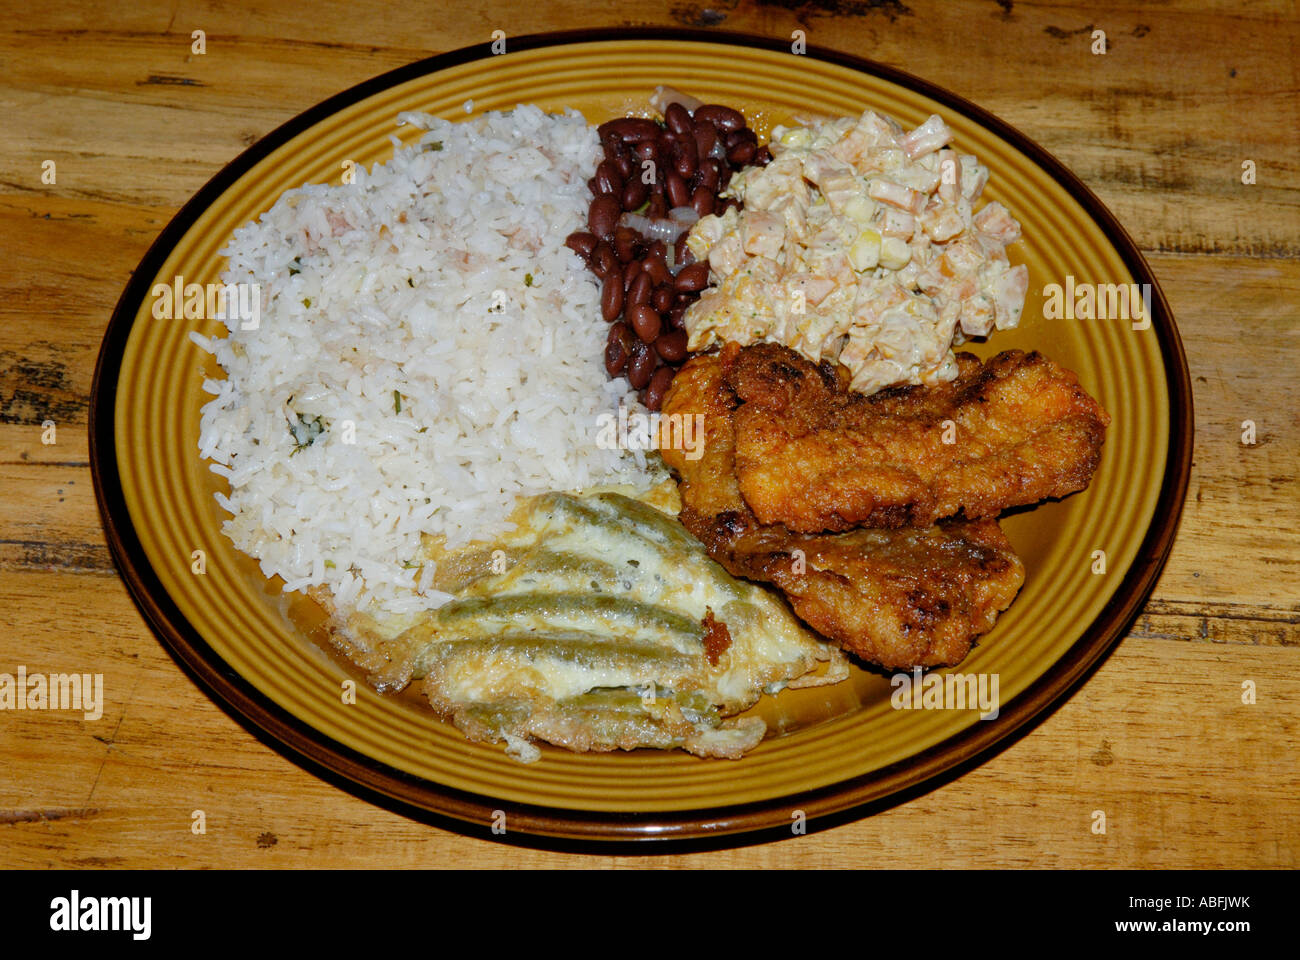 Typical Costa Rican meal, comida tipica.  Meat, vegetable, rice and beans (gallo pinto) - Stock Image